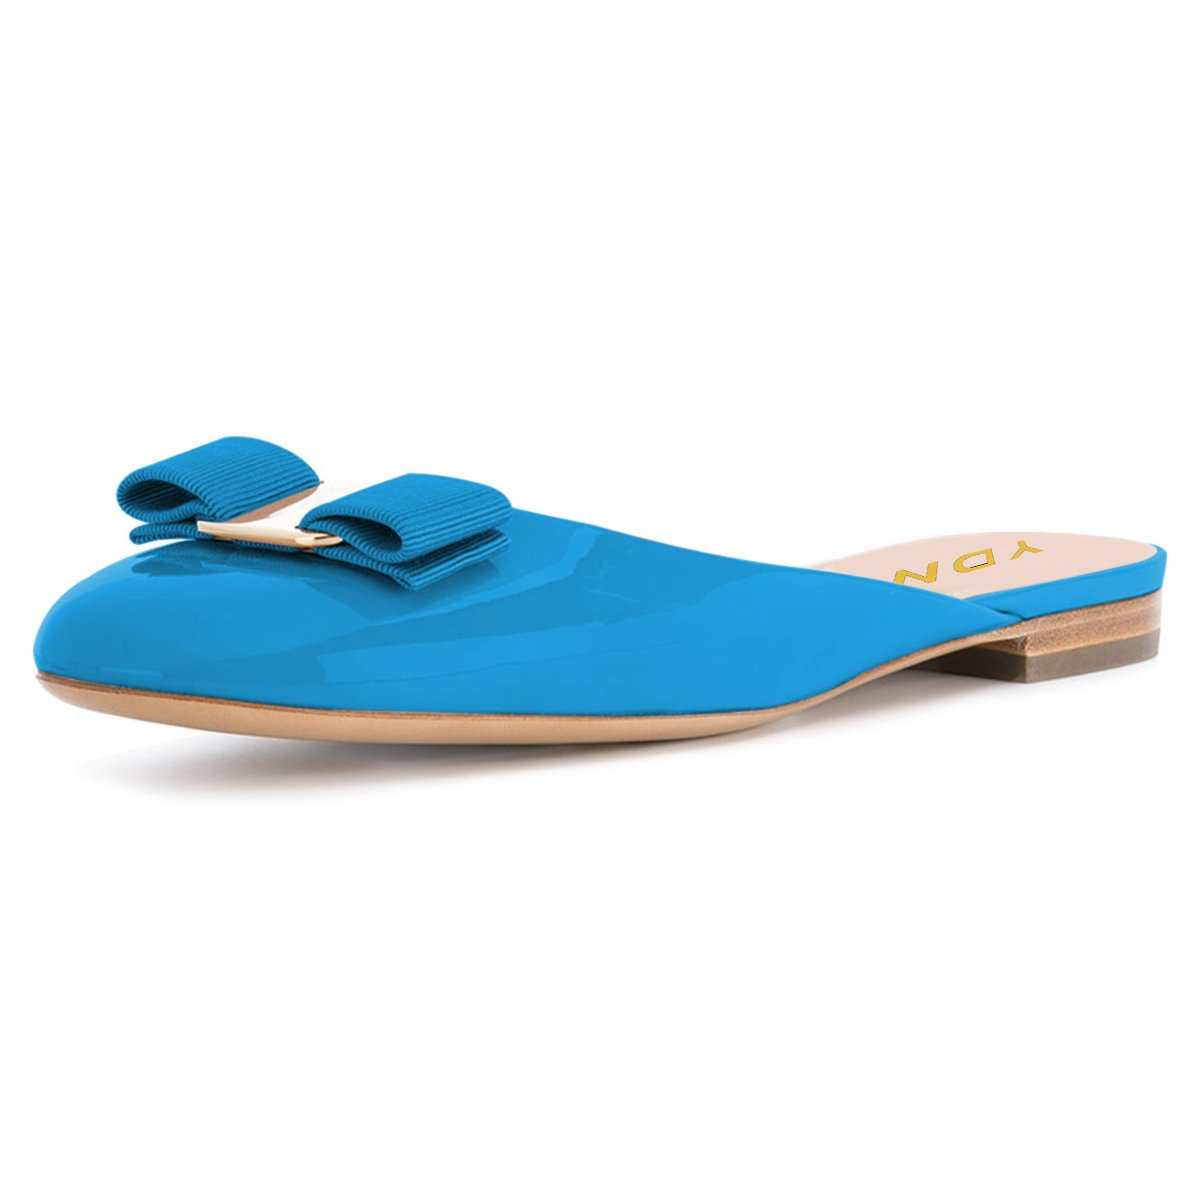 YDN Women Round Toe Low Heel Flats Slip on Bowknot Slippers Summer Slide Clog Shoes Blue 11